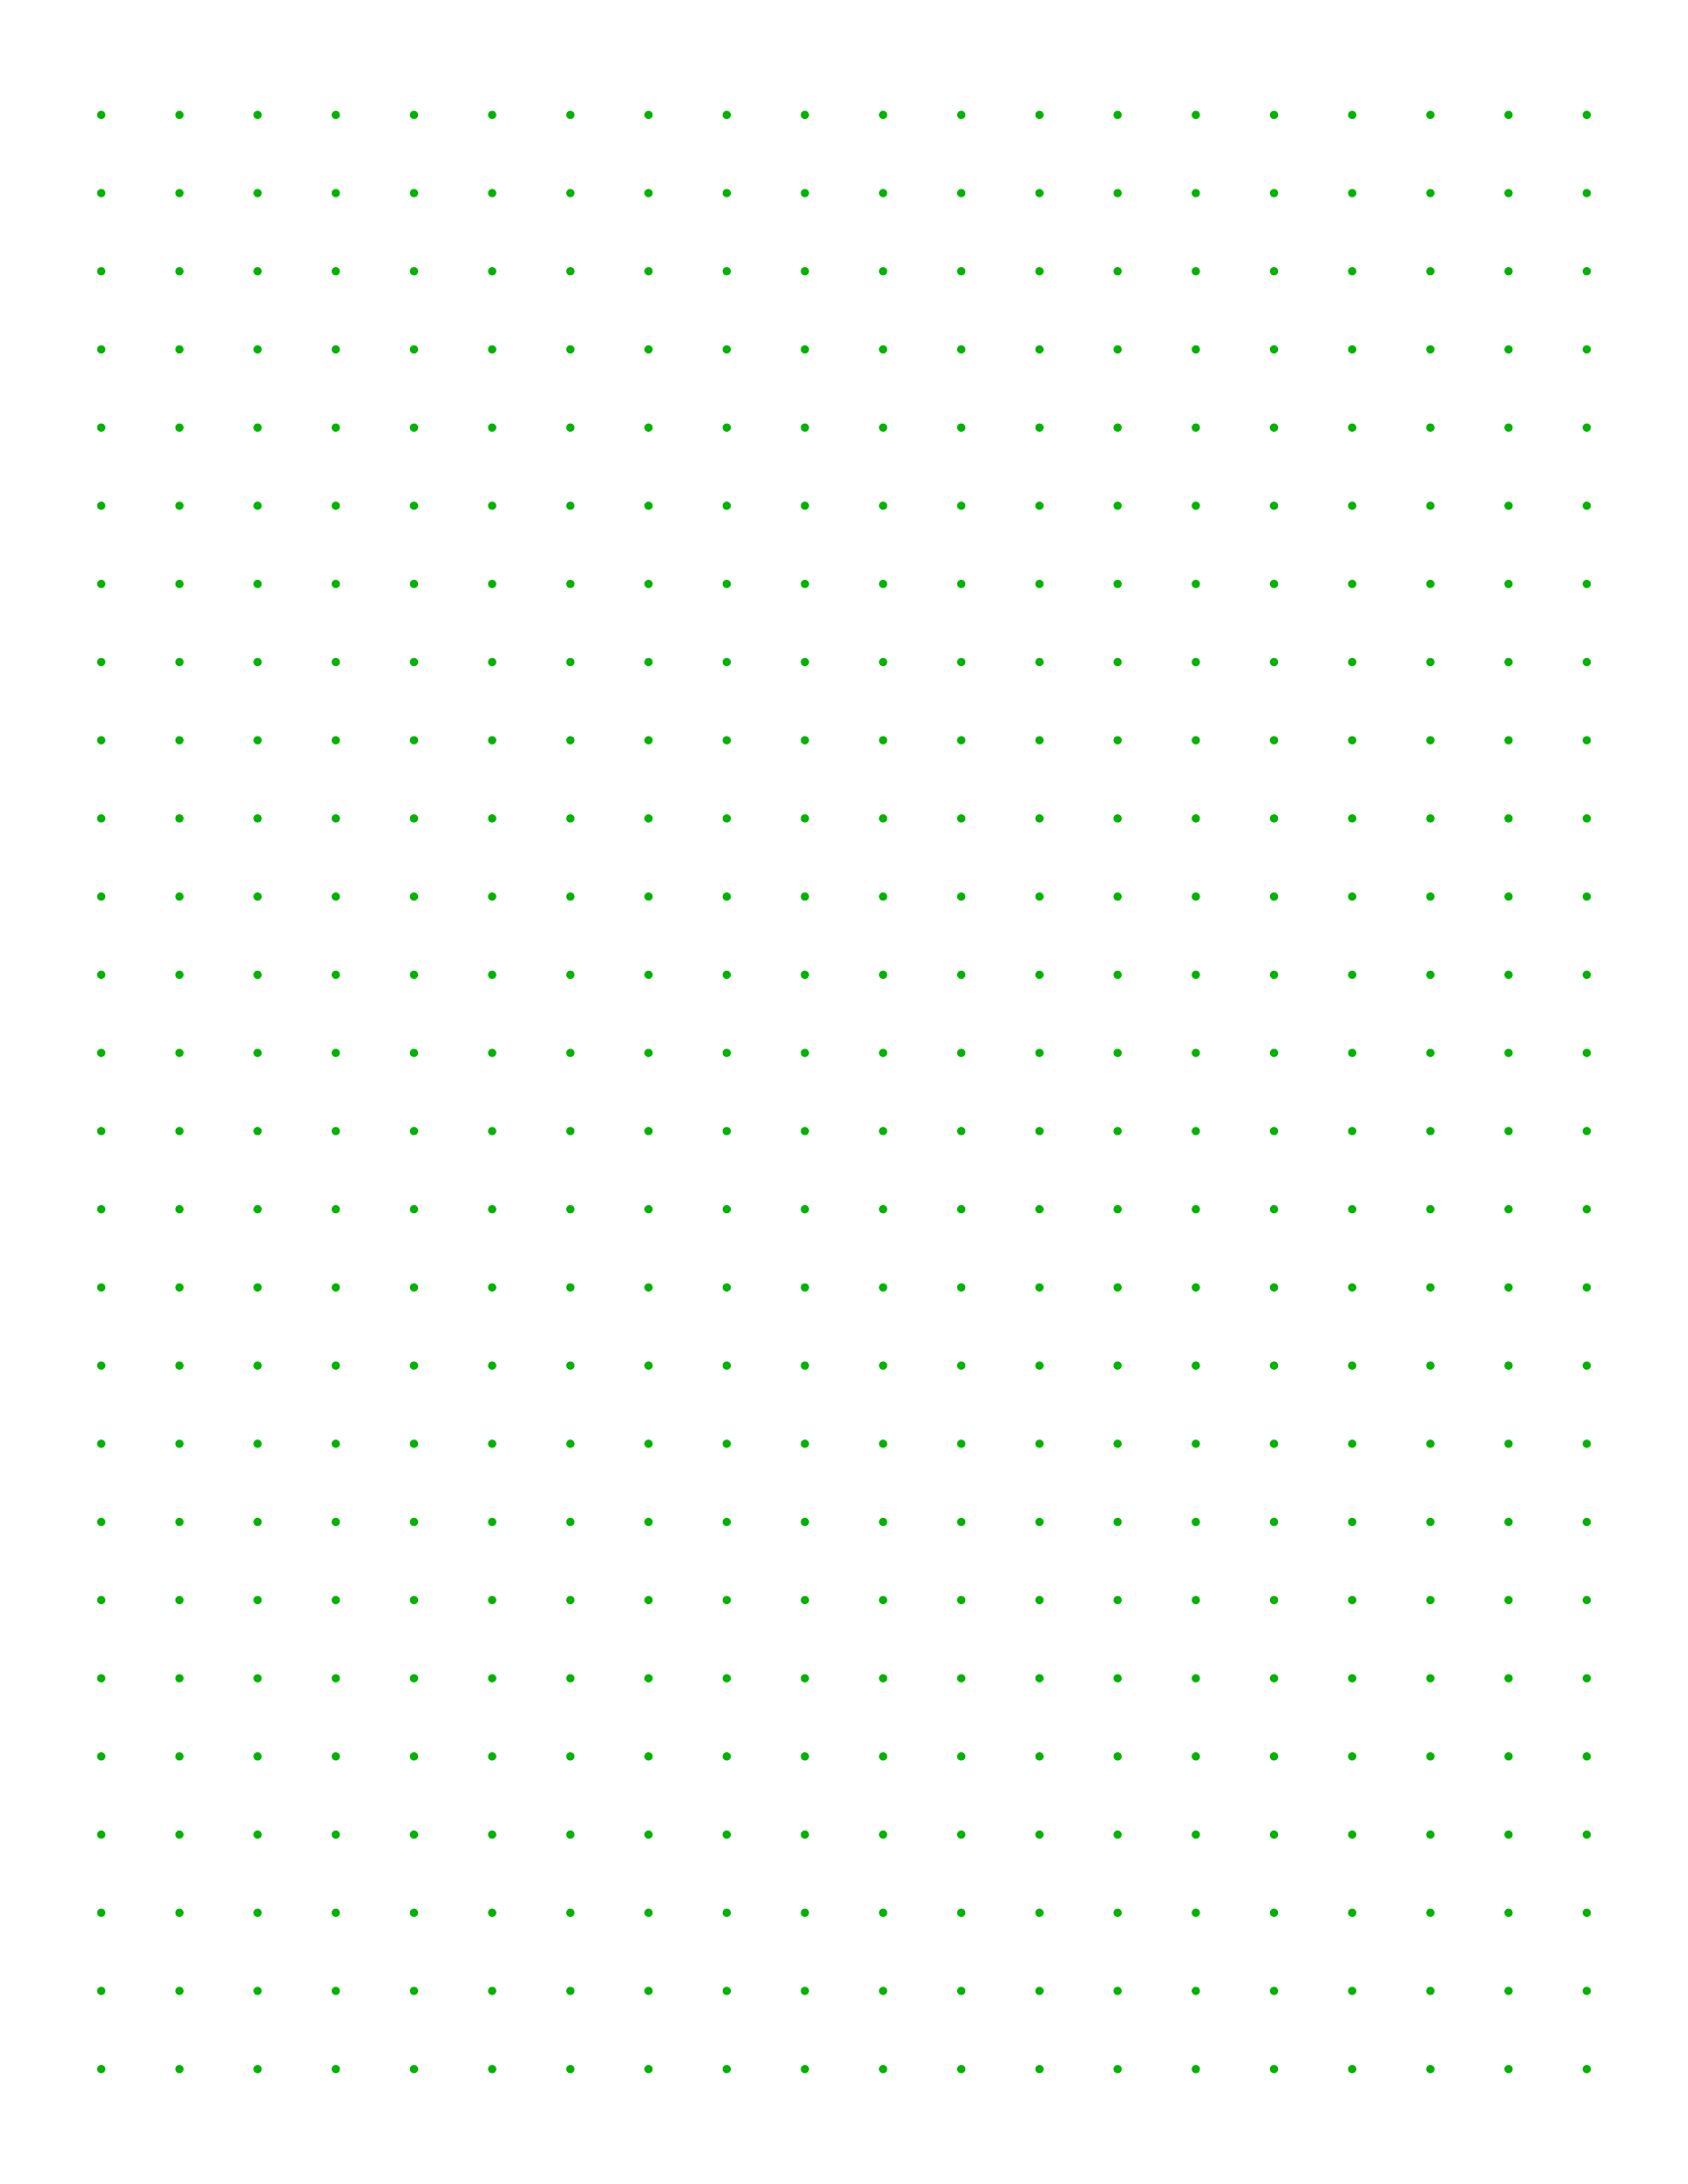 Free Online Graph Paper Square Dots Printable Graph Paper Bullet Journal Grid Paper Graph Paper